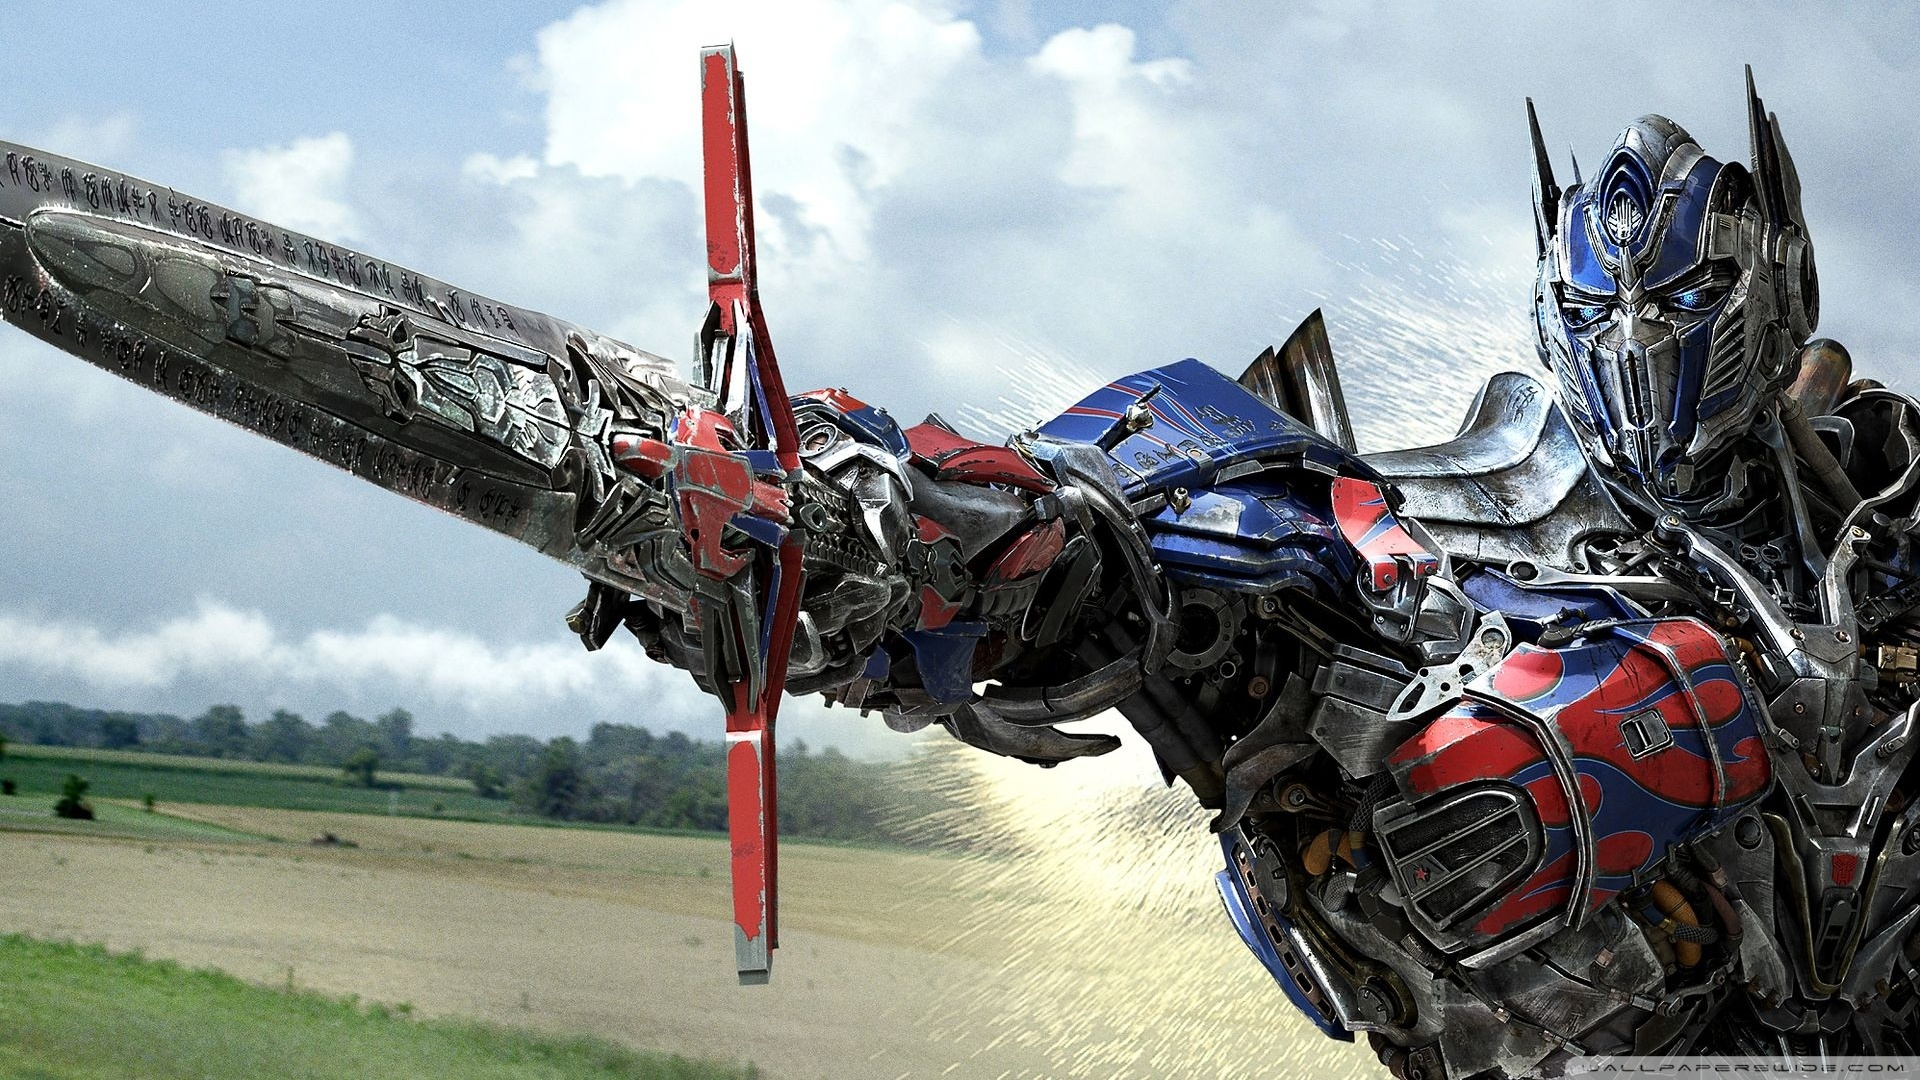 Transformers Desktop Wallpaper 50732